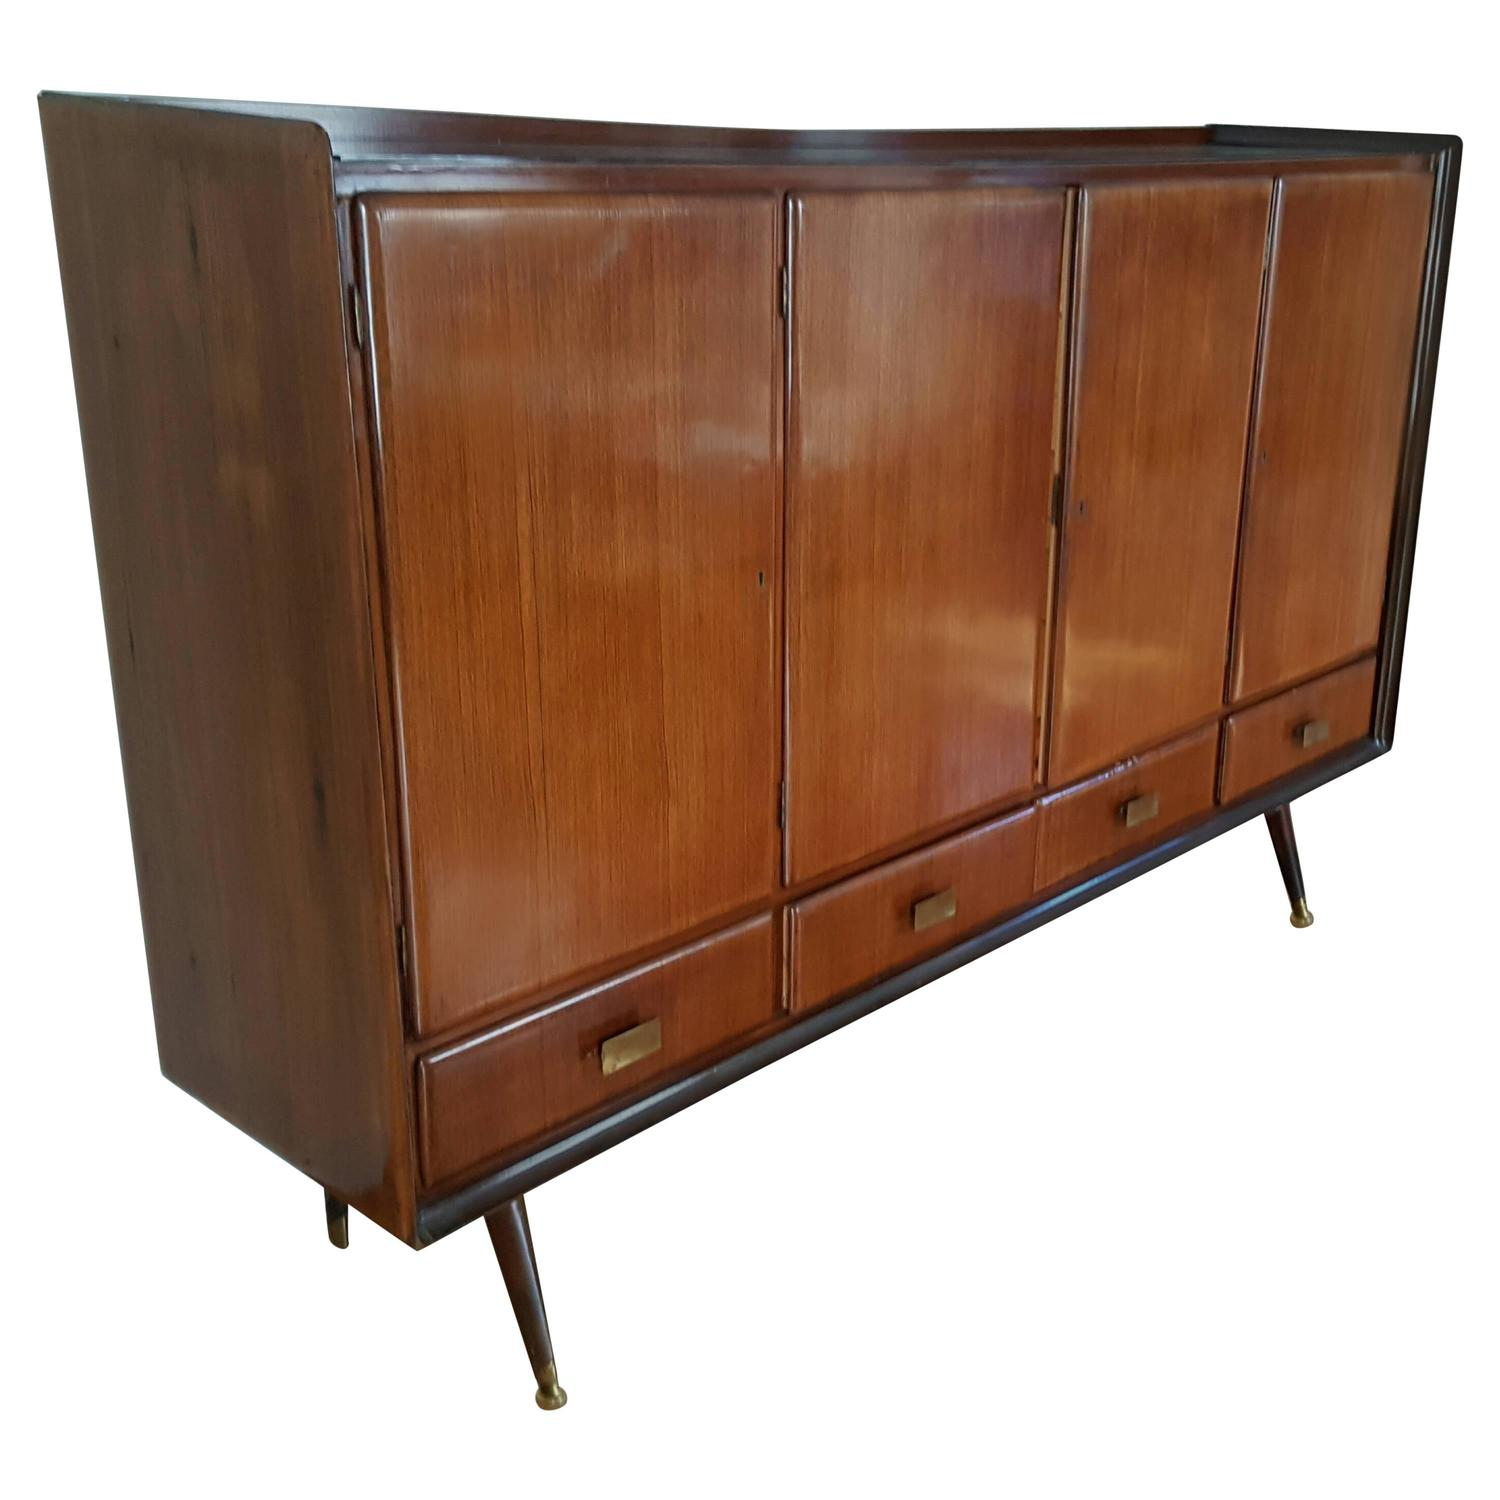 Italian Modern Sideboard Bar Italian Walnut Manner Of Paolo Buffa For Sale At 1stdibs